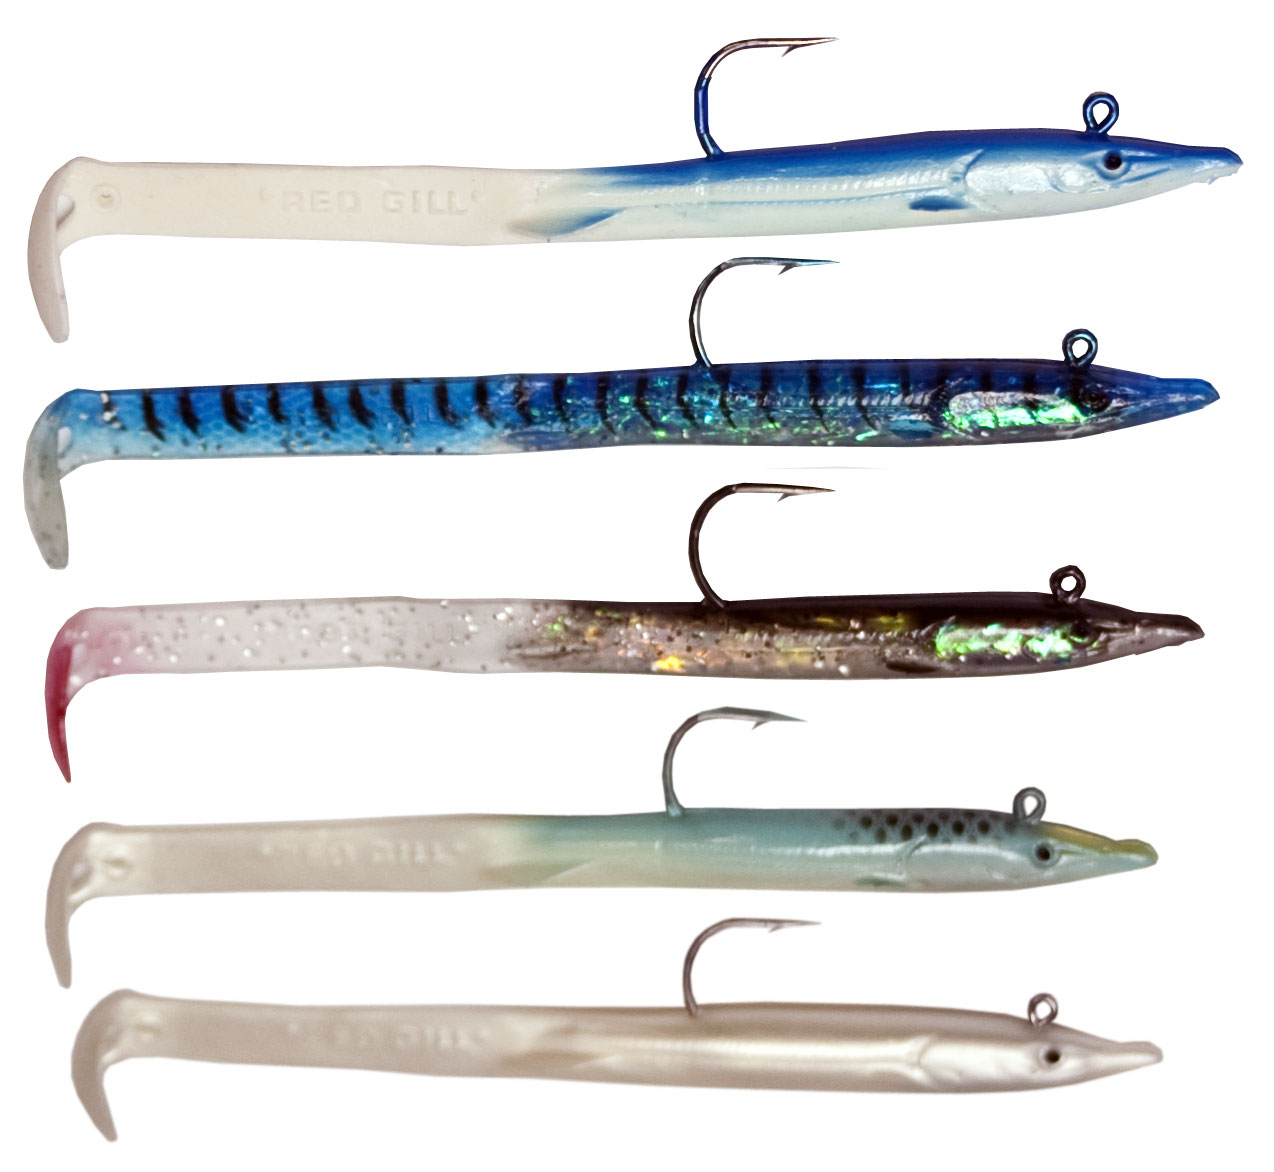 Red gill evolution bass lure assortment glasgow angling for Bass fishing lures